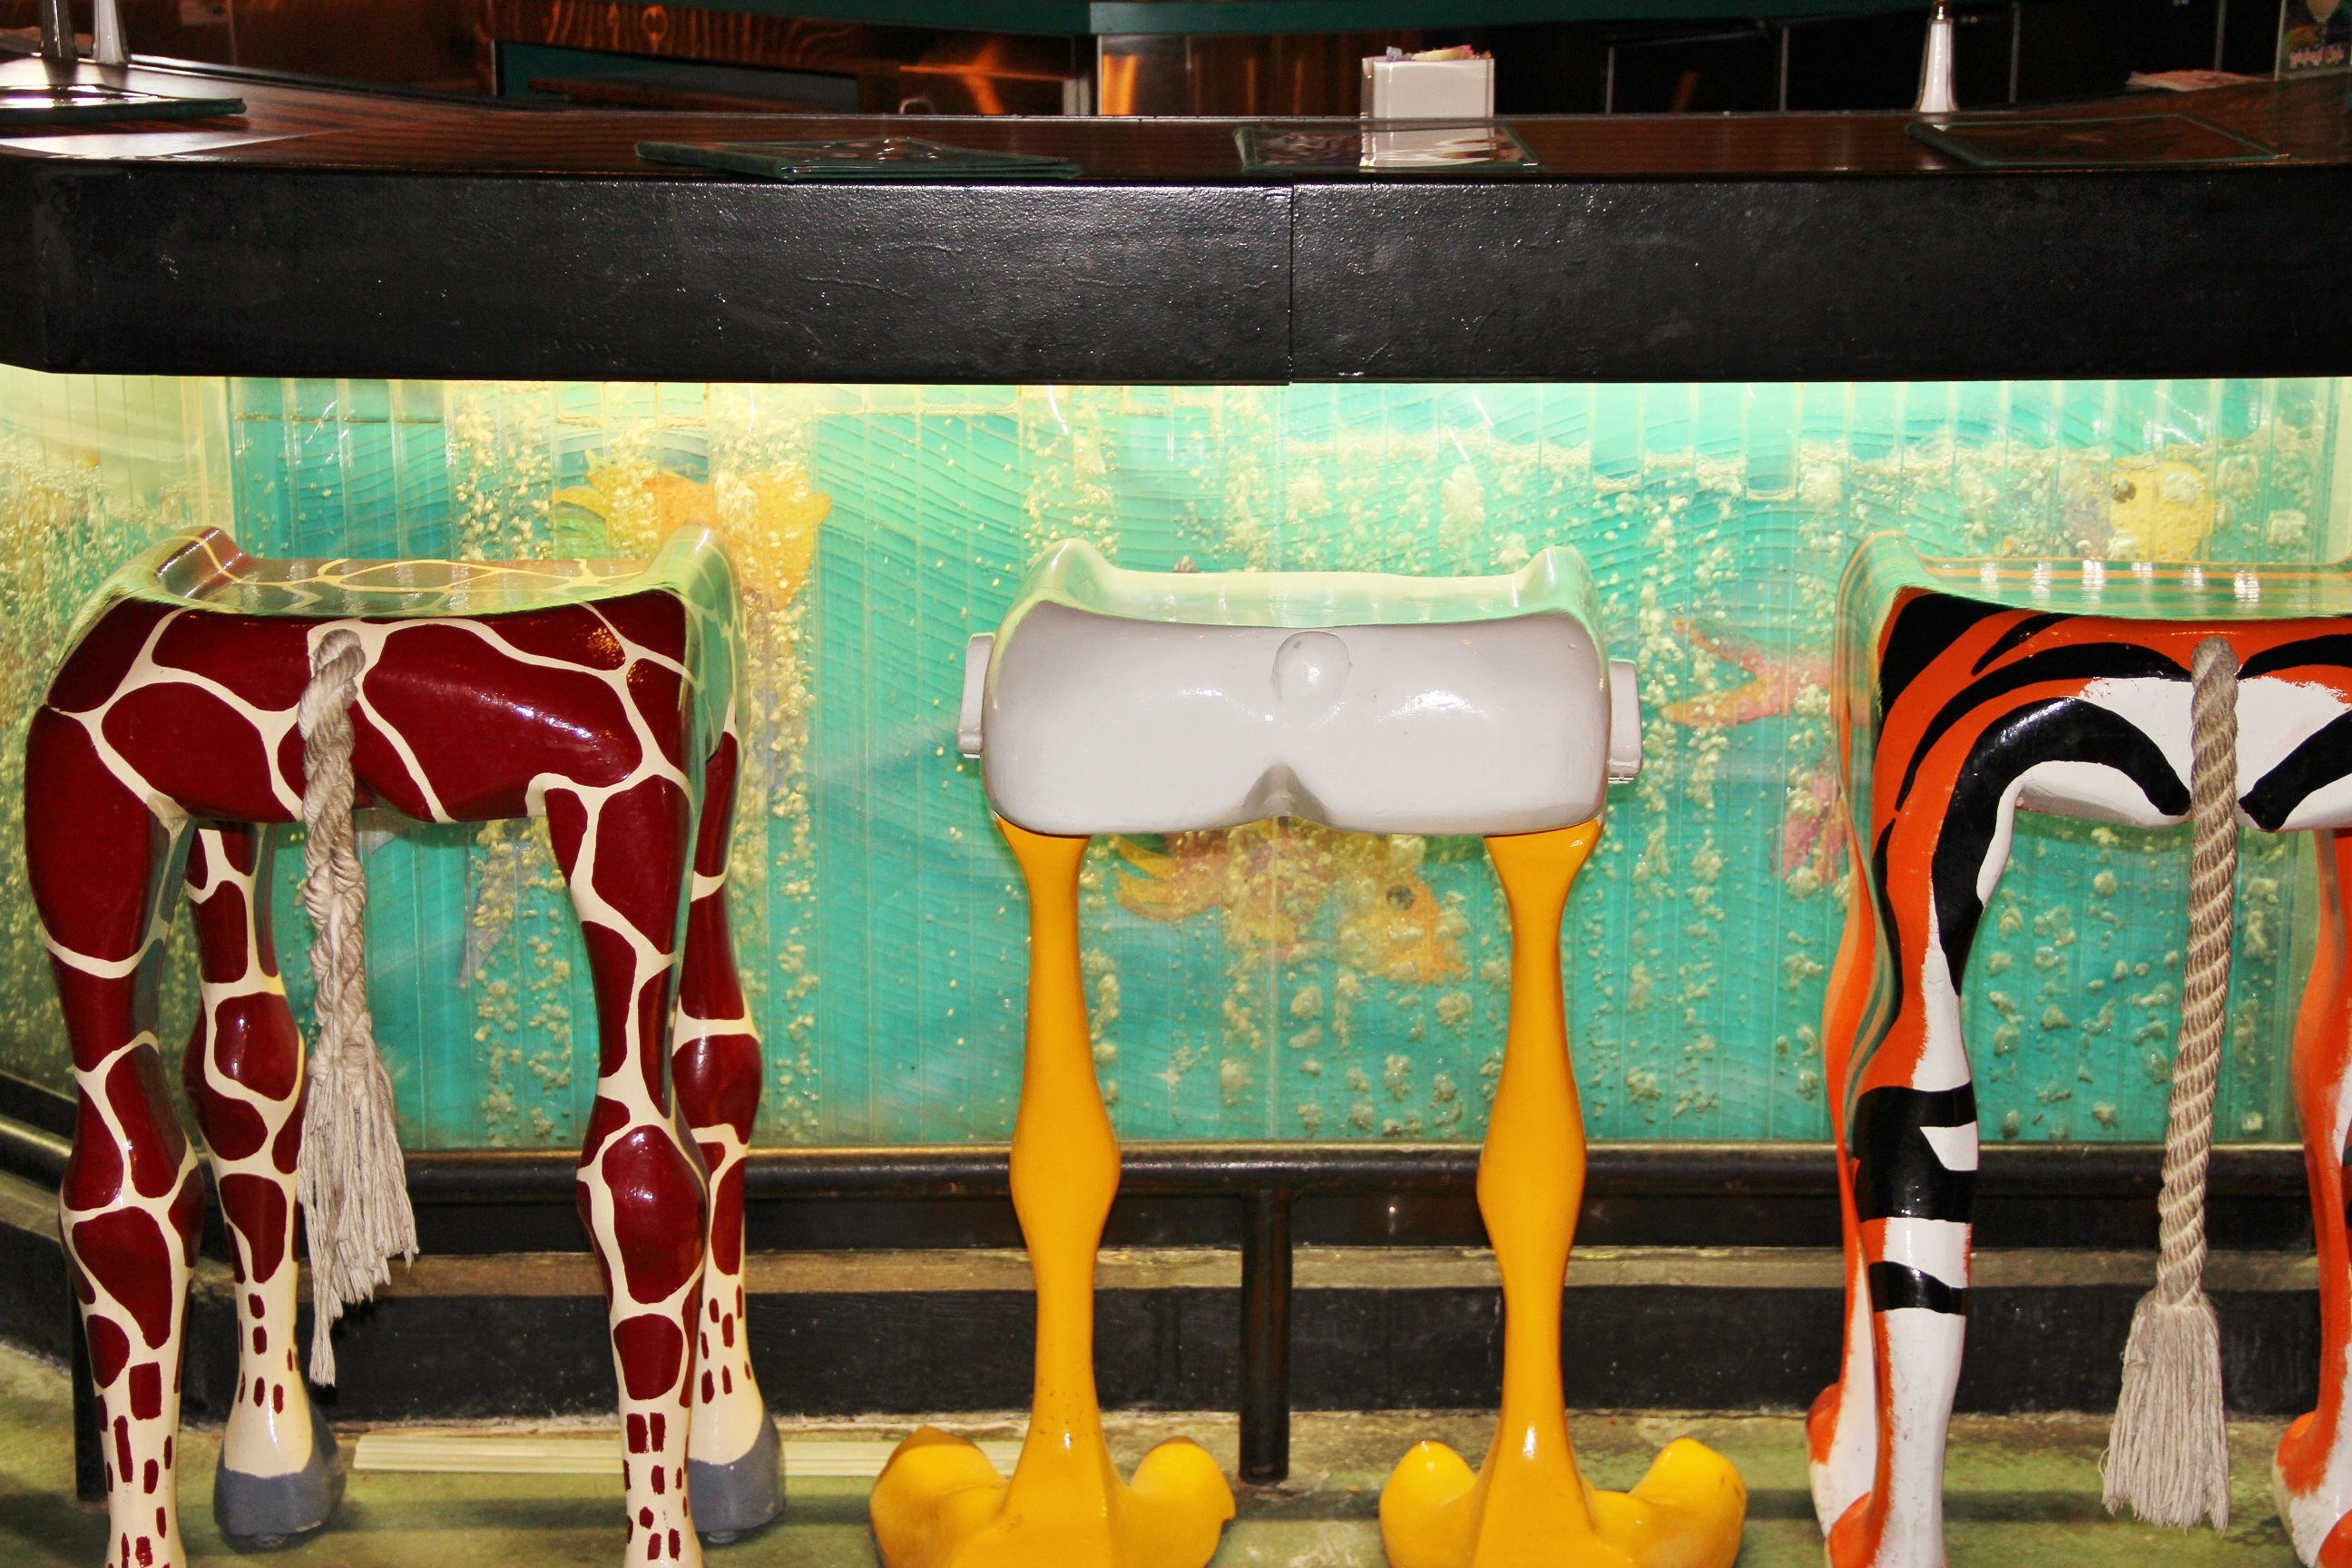 Rainforest Cafe: A Little Adventure With Your Meal - East Valley ...